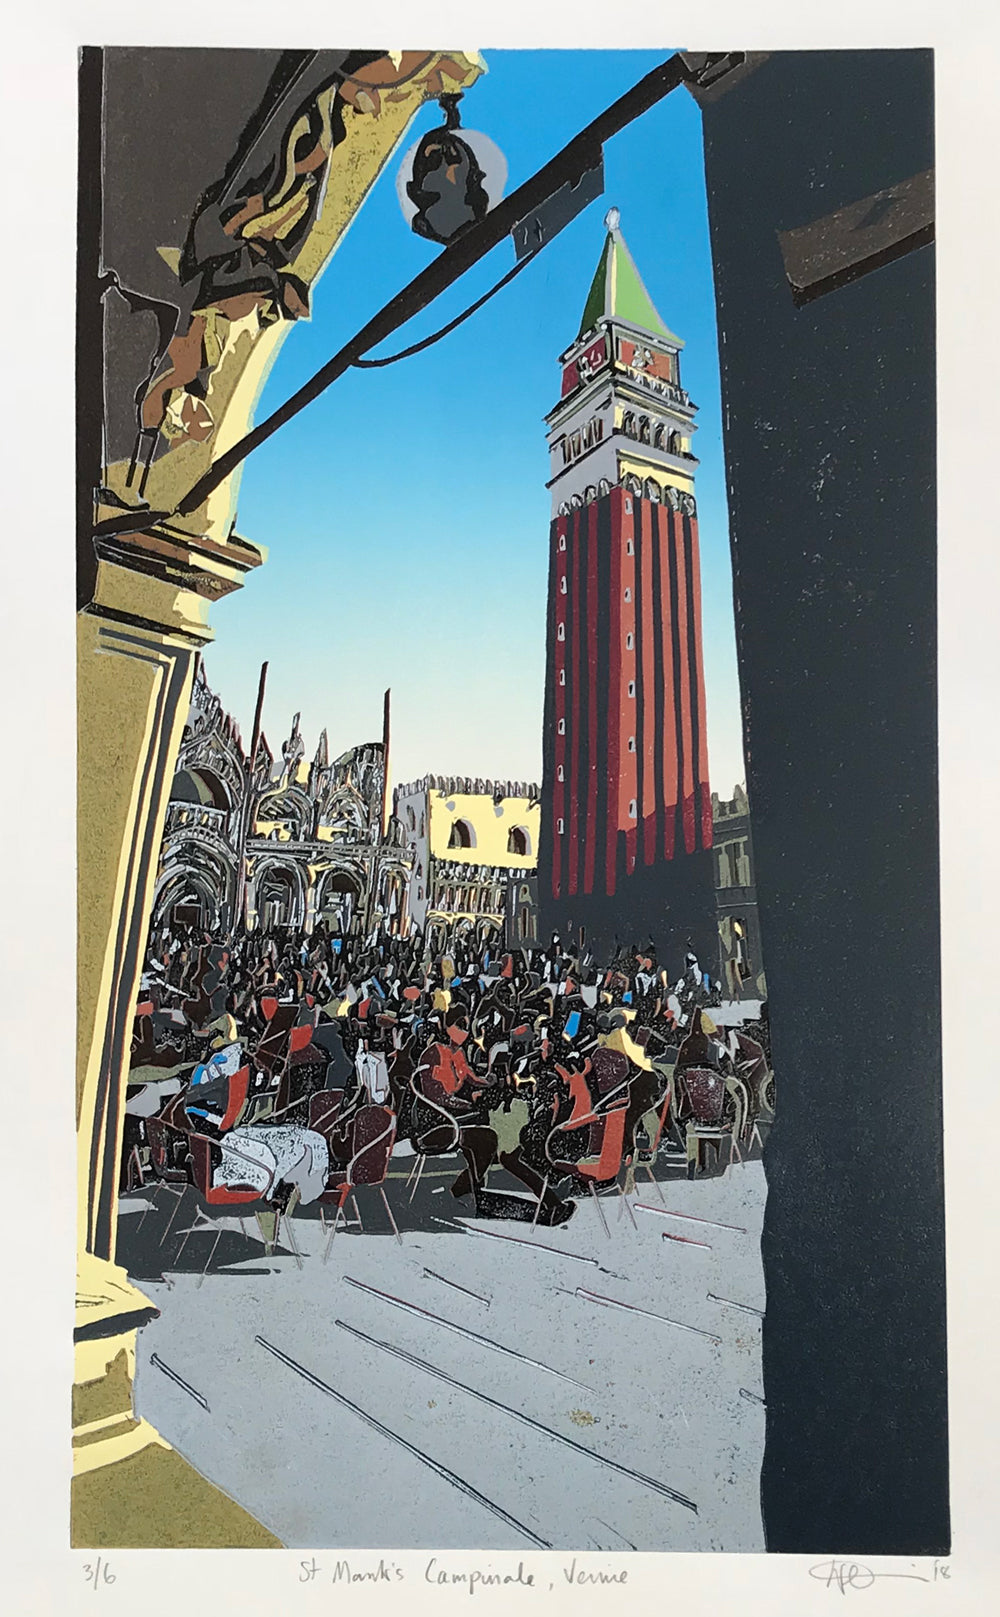 St Mark's Campanile, Venice by Kevin Holdaway